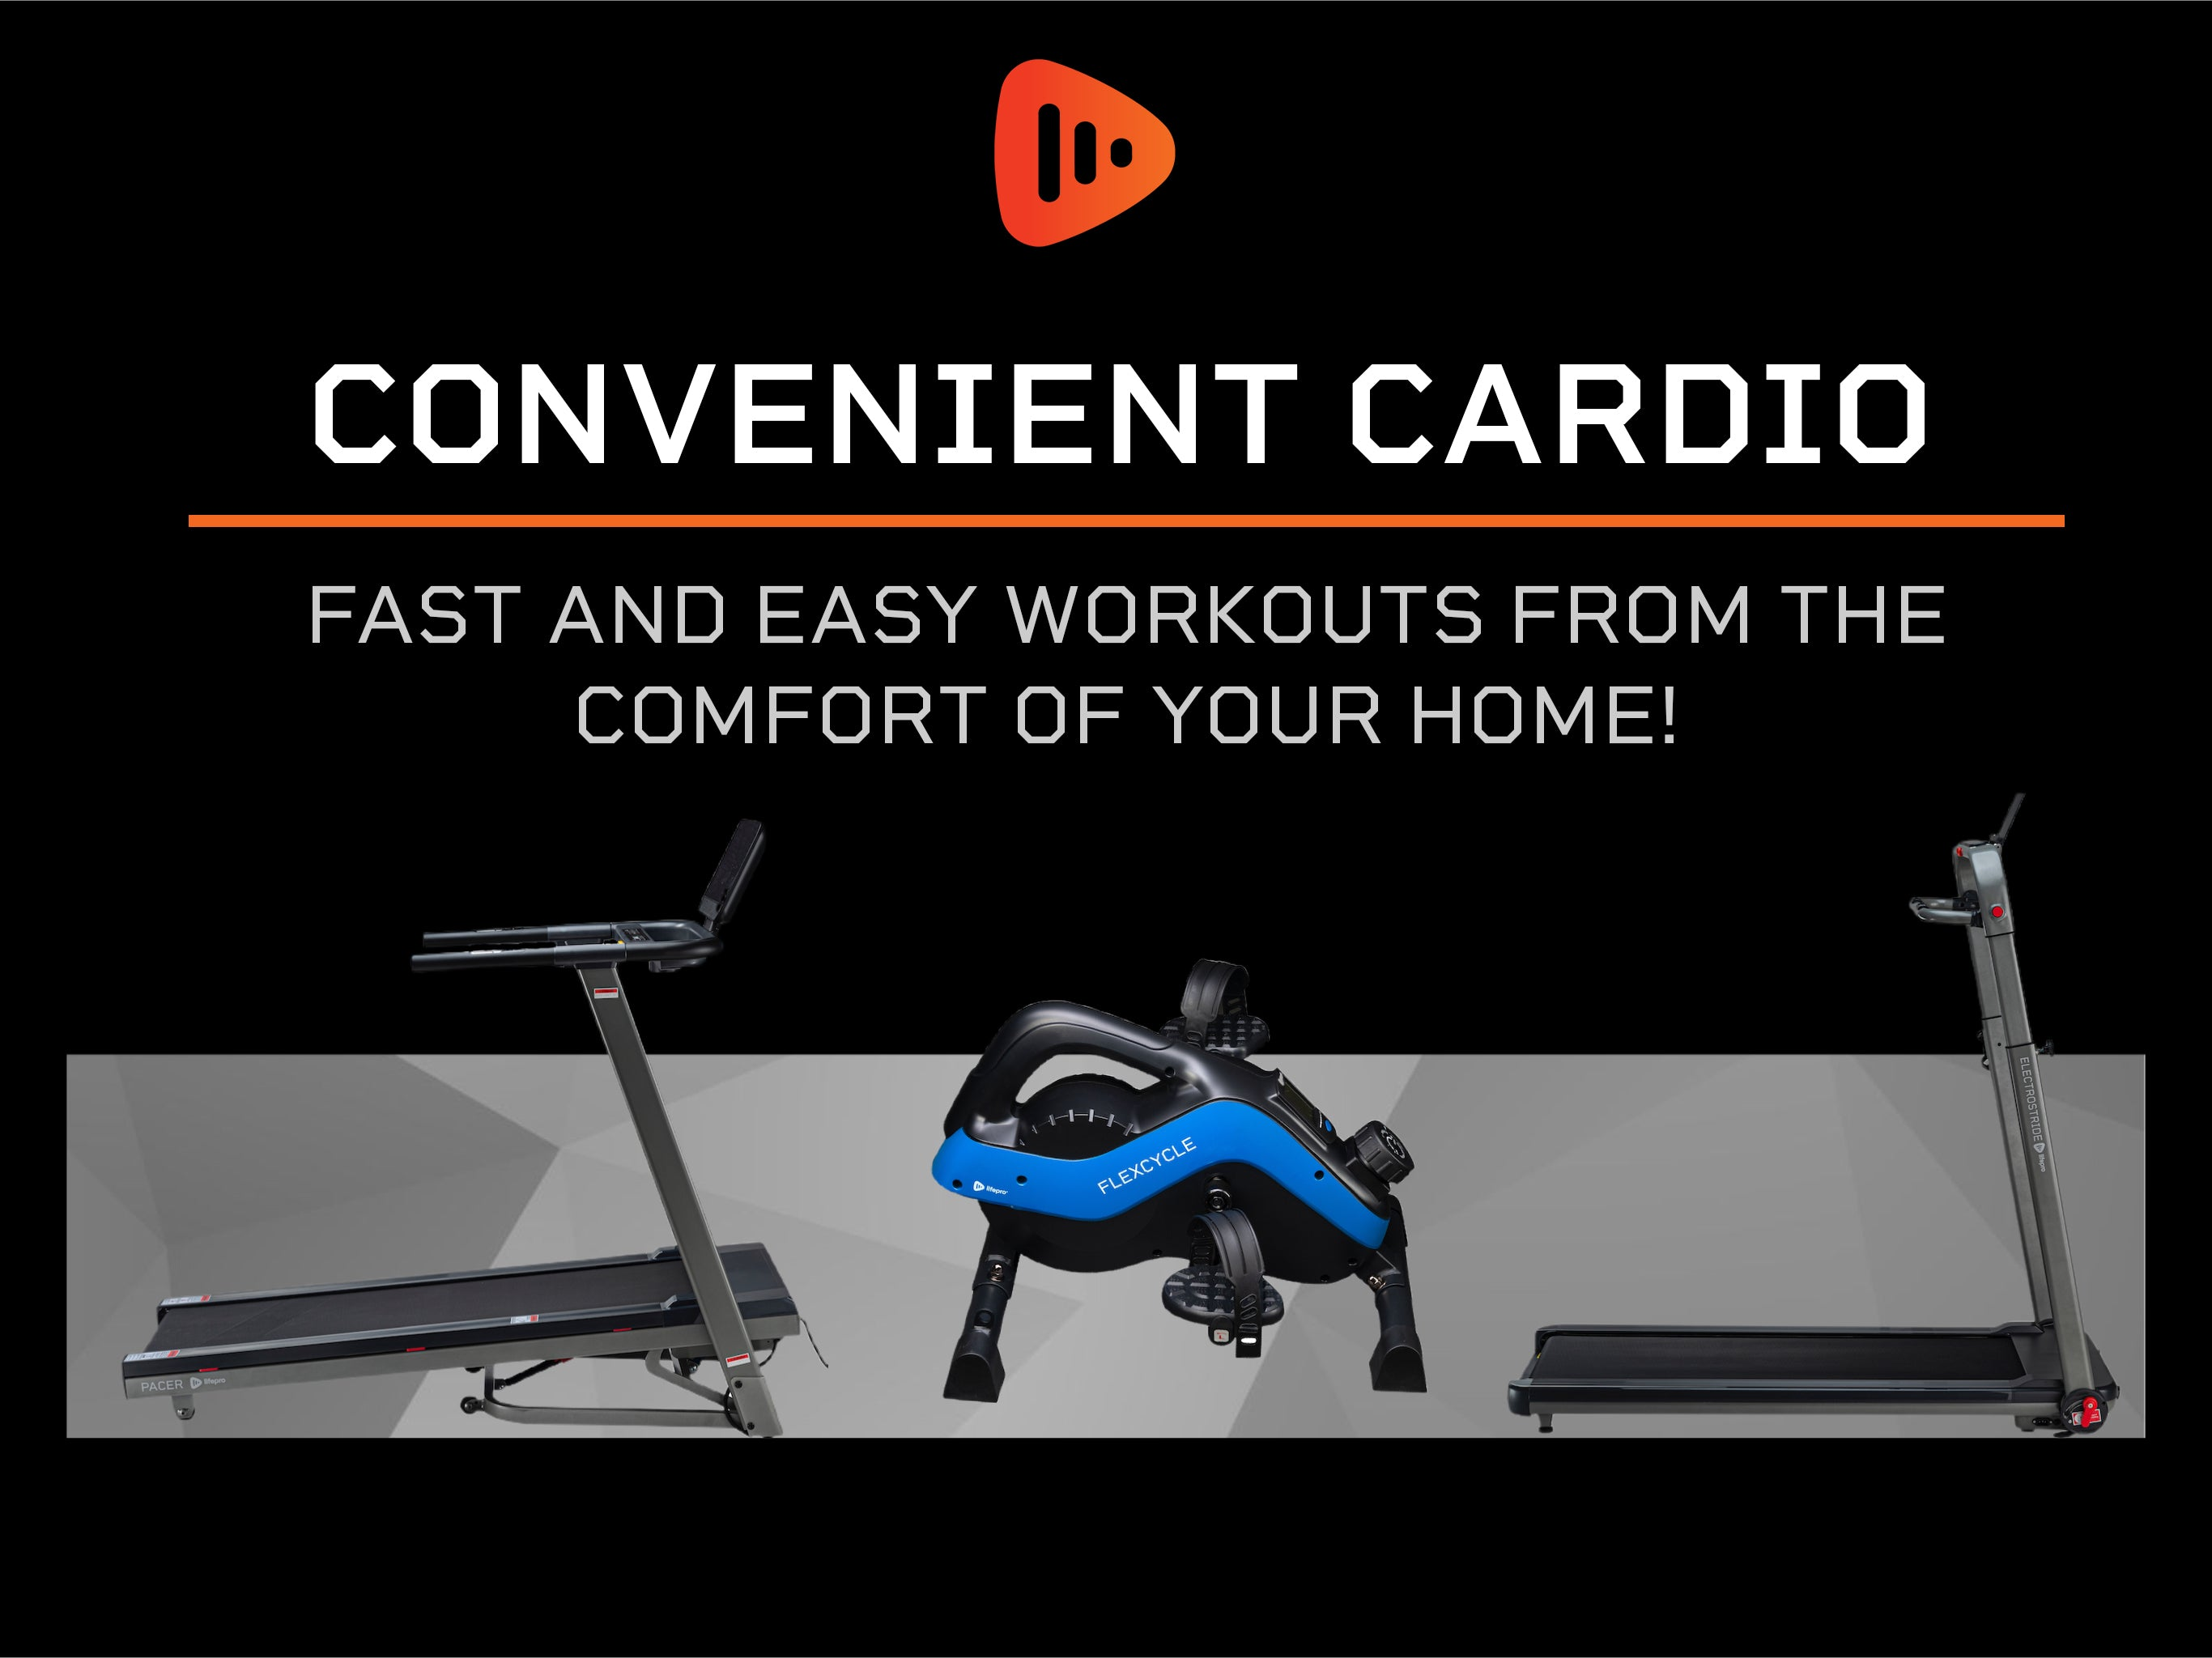 3 Convenient Cardio Machines For Your Home